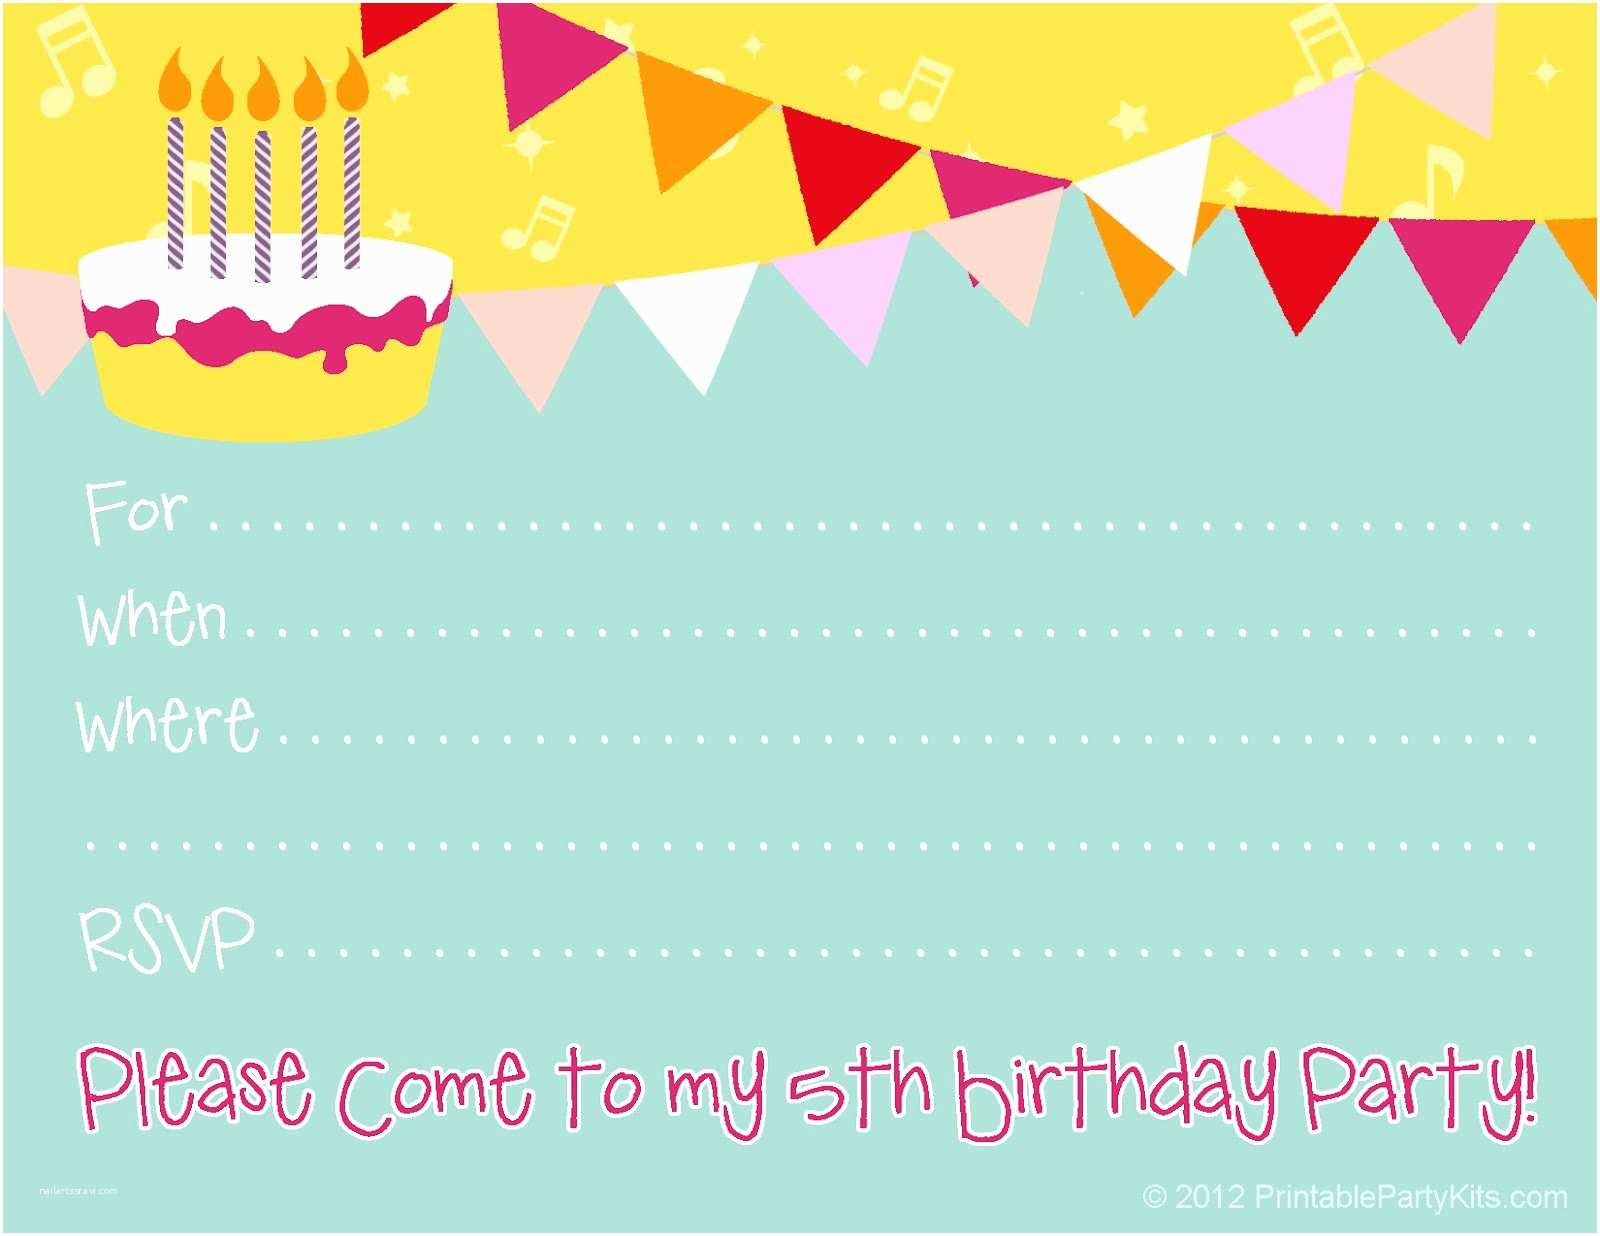 Birthday Party Invitations Free Printable Party Invitations Free Printable Invite